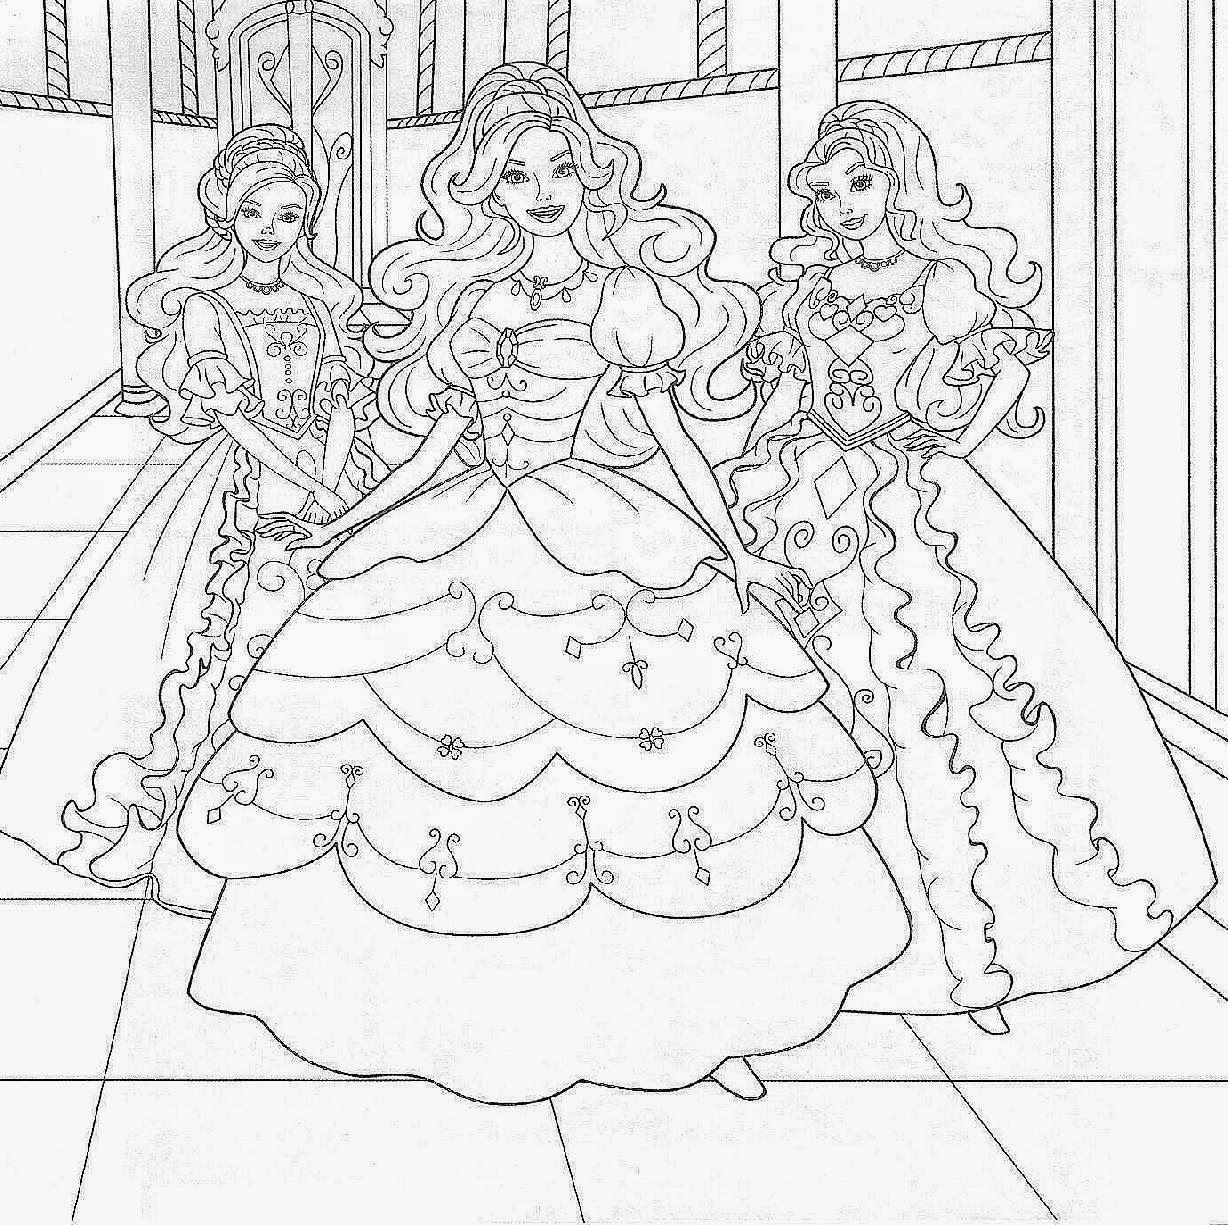 island princess coloring pages - photo#25